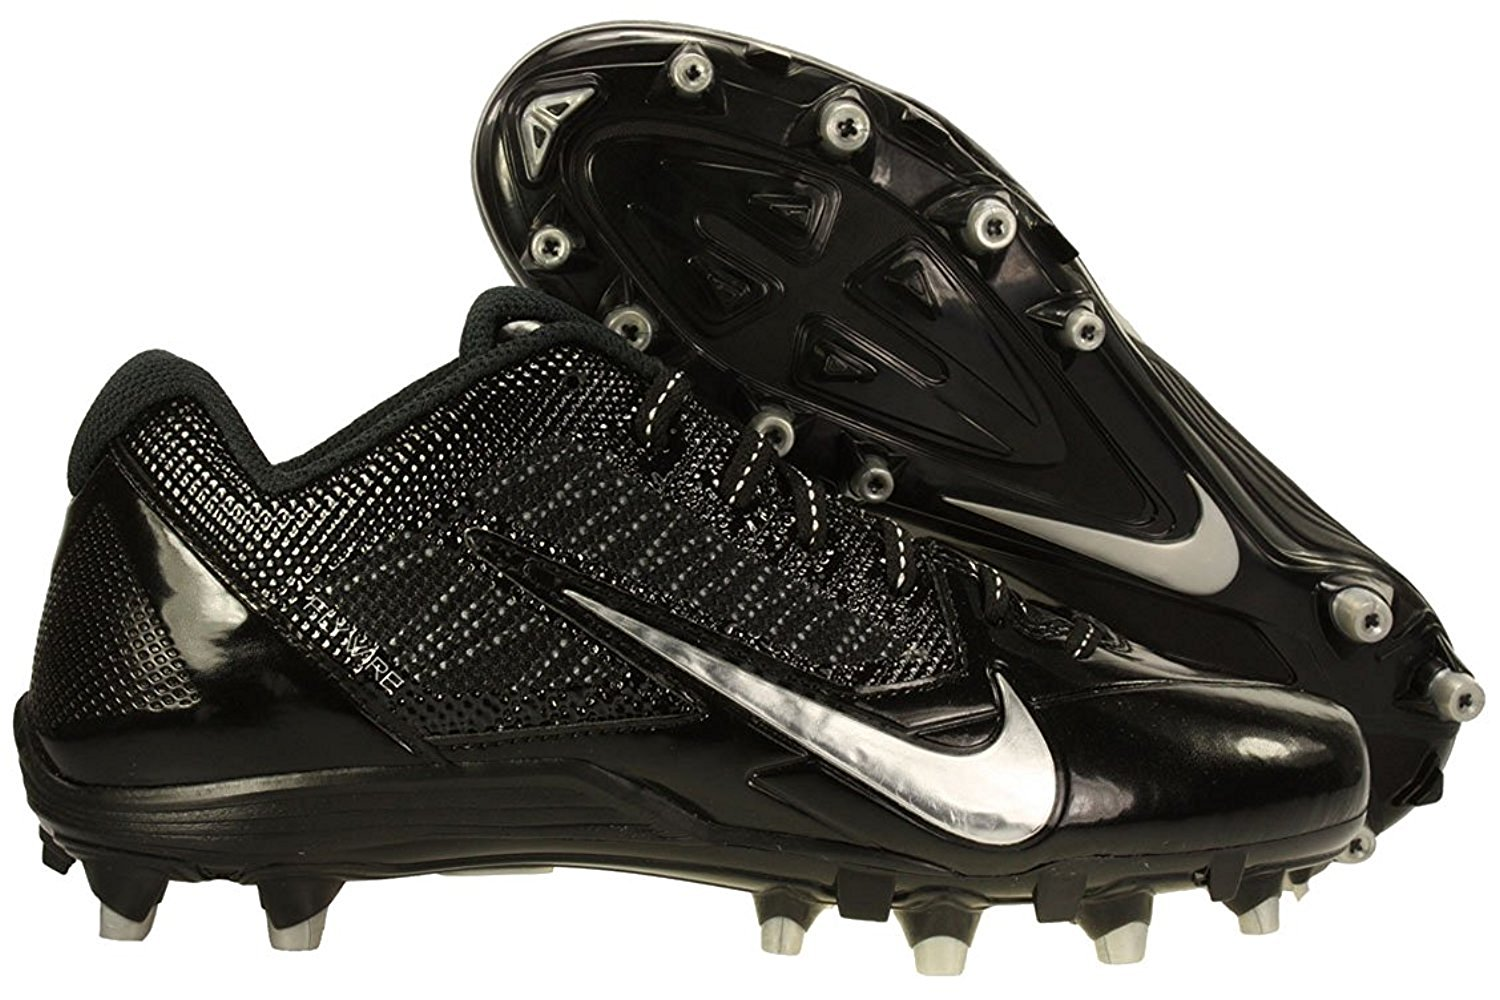 9cf3c2949e5 Buy NIKE ALPHA PRO FOOTBALL CLEATS NCAA NFL in Cheap Price on ...